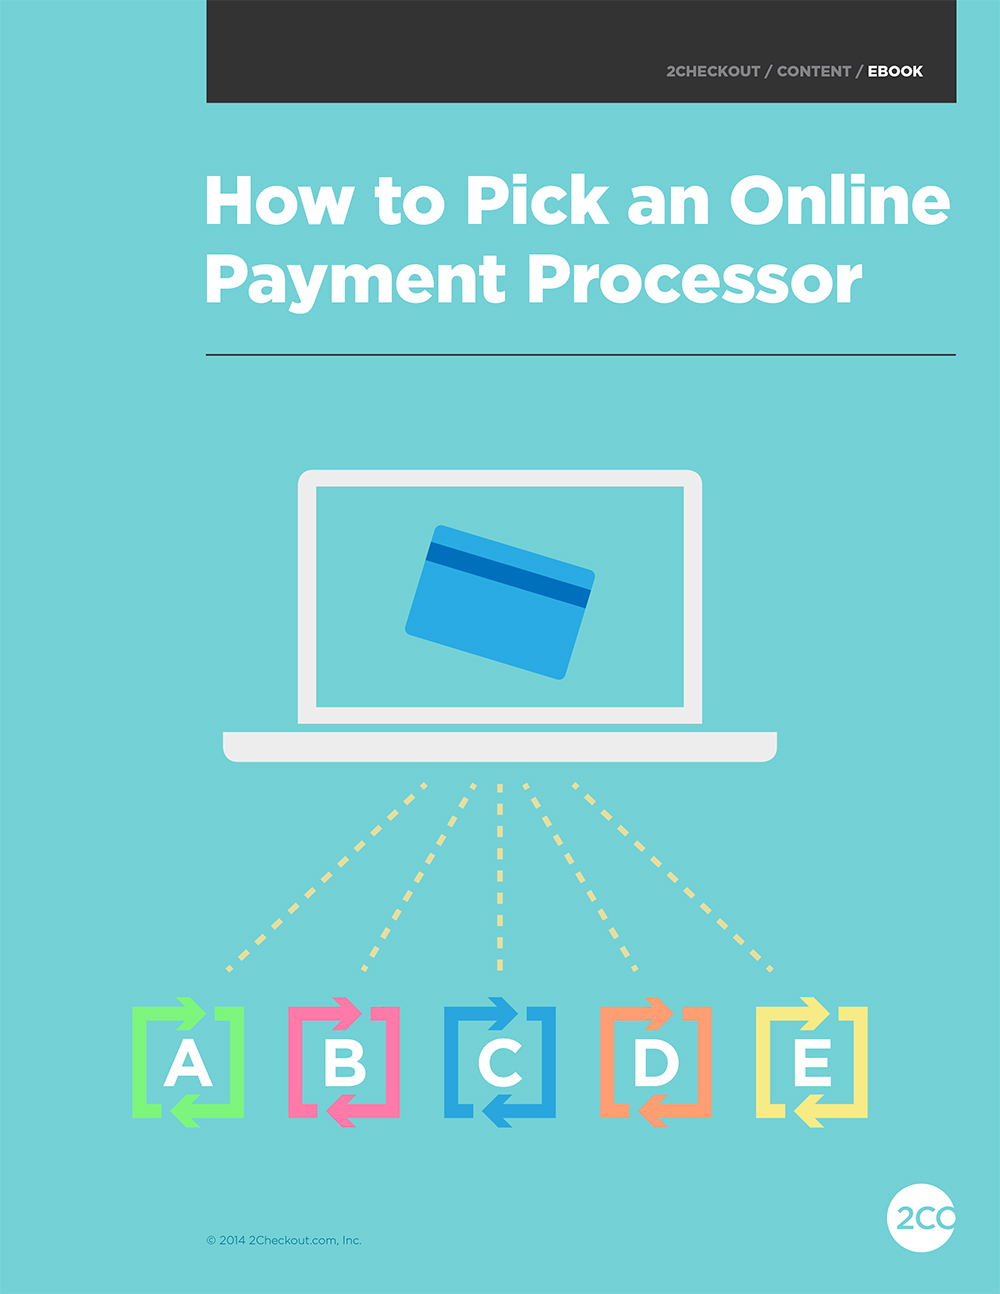 How to Pick an Online Payment Processor